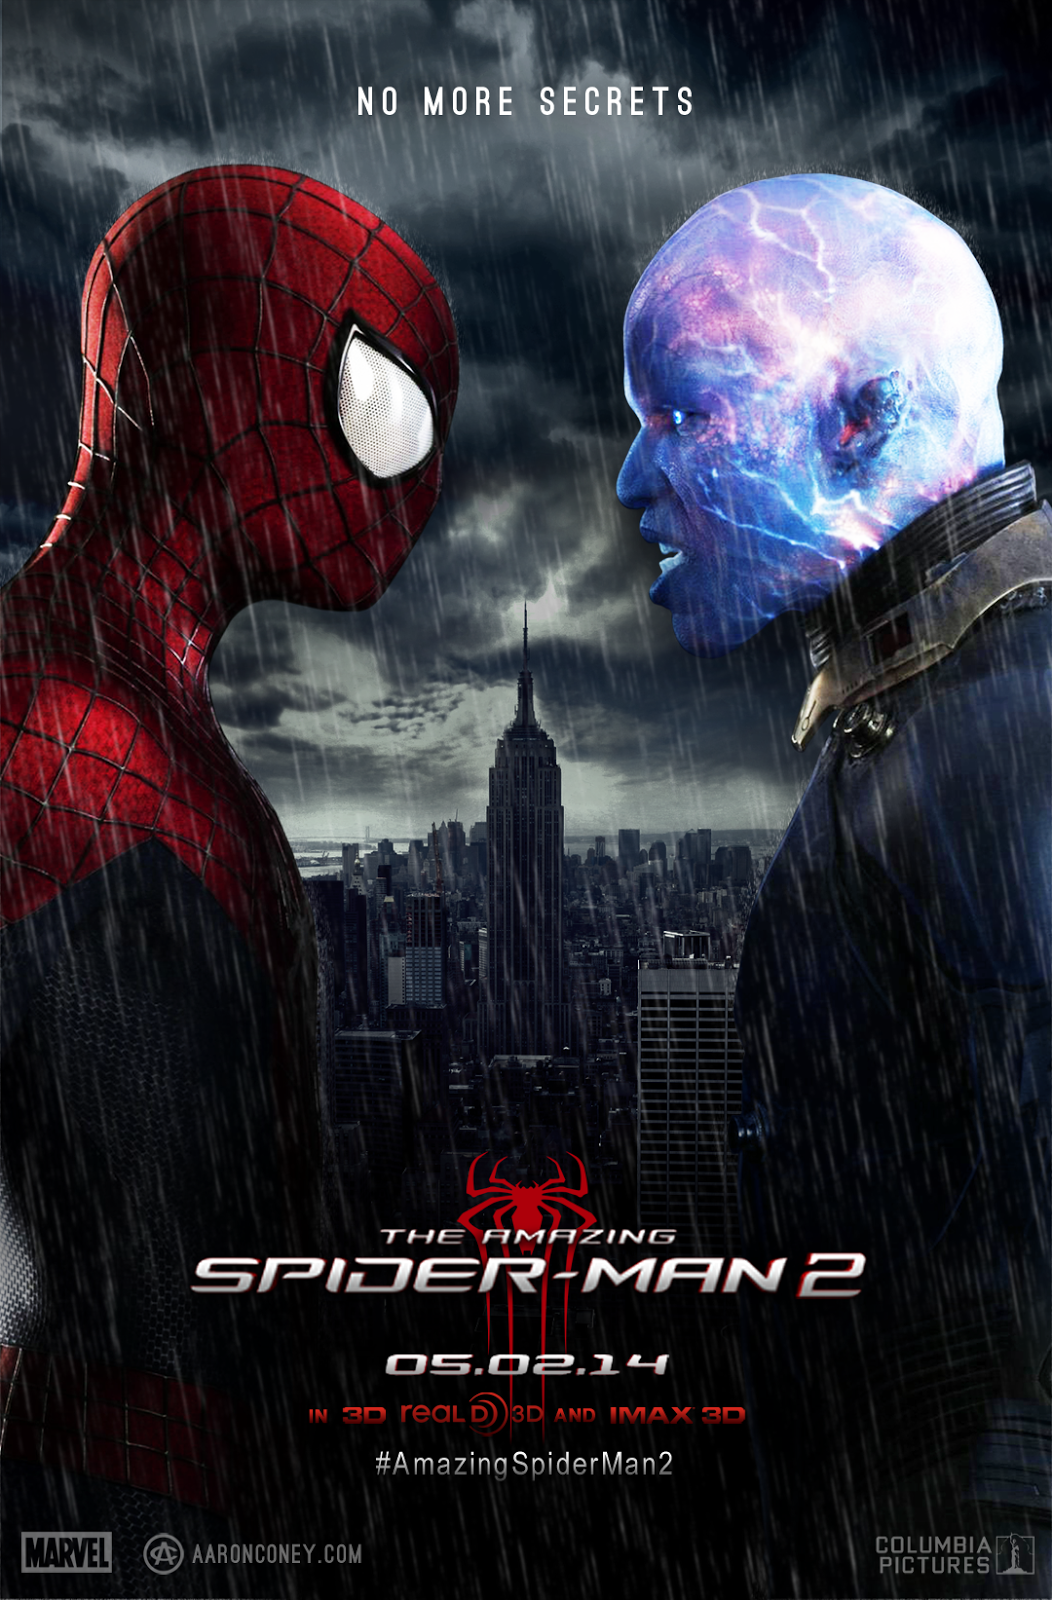 The Amazing Spider Man 2 2014 Marc Webb The Gizzle Review